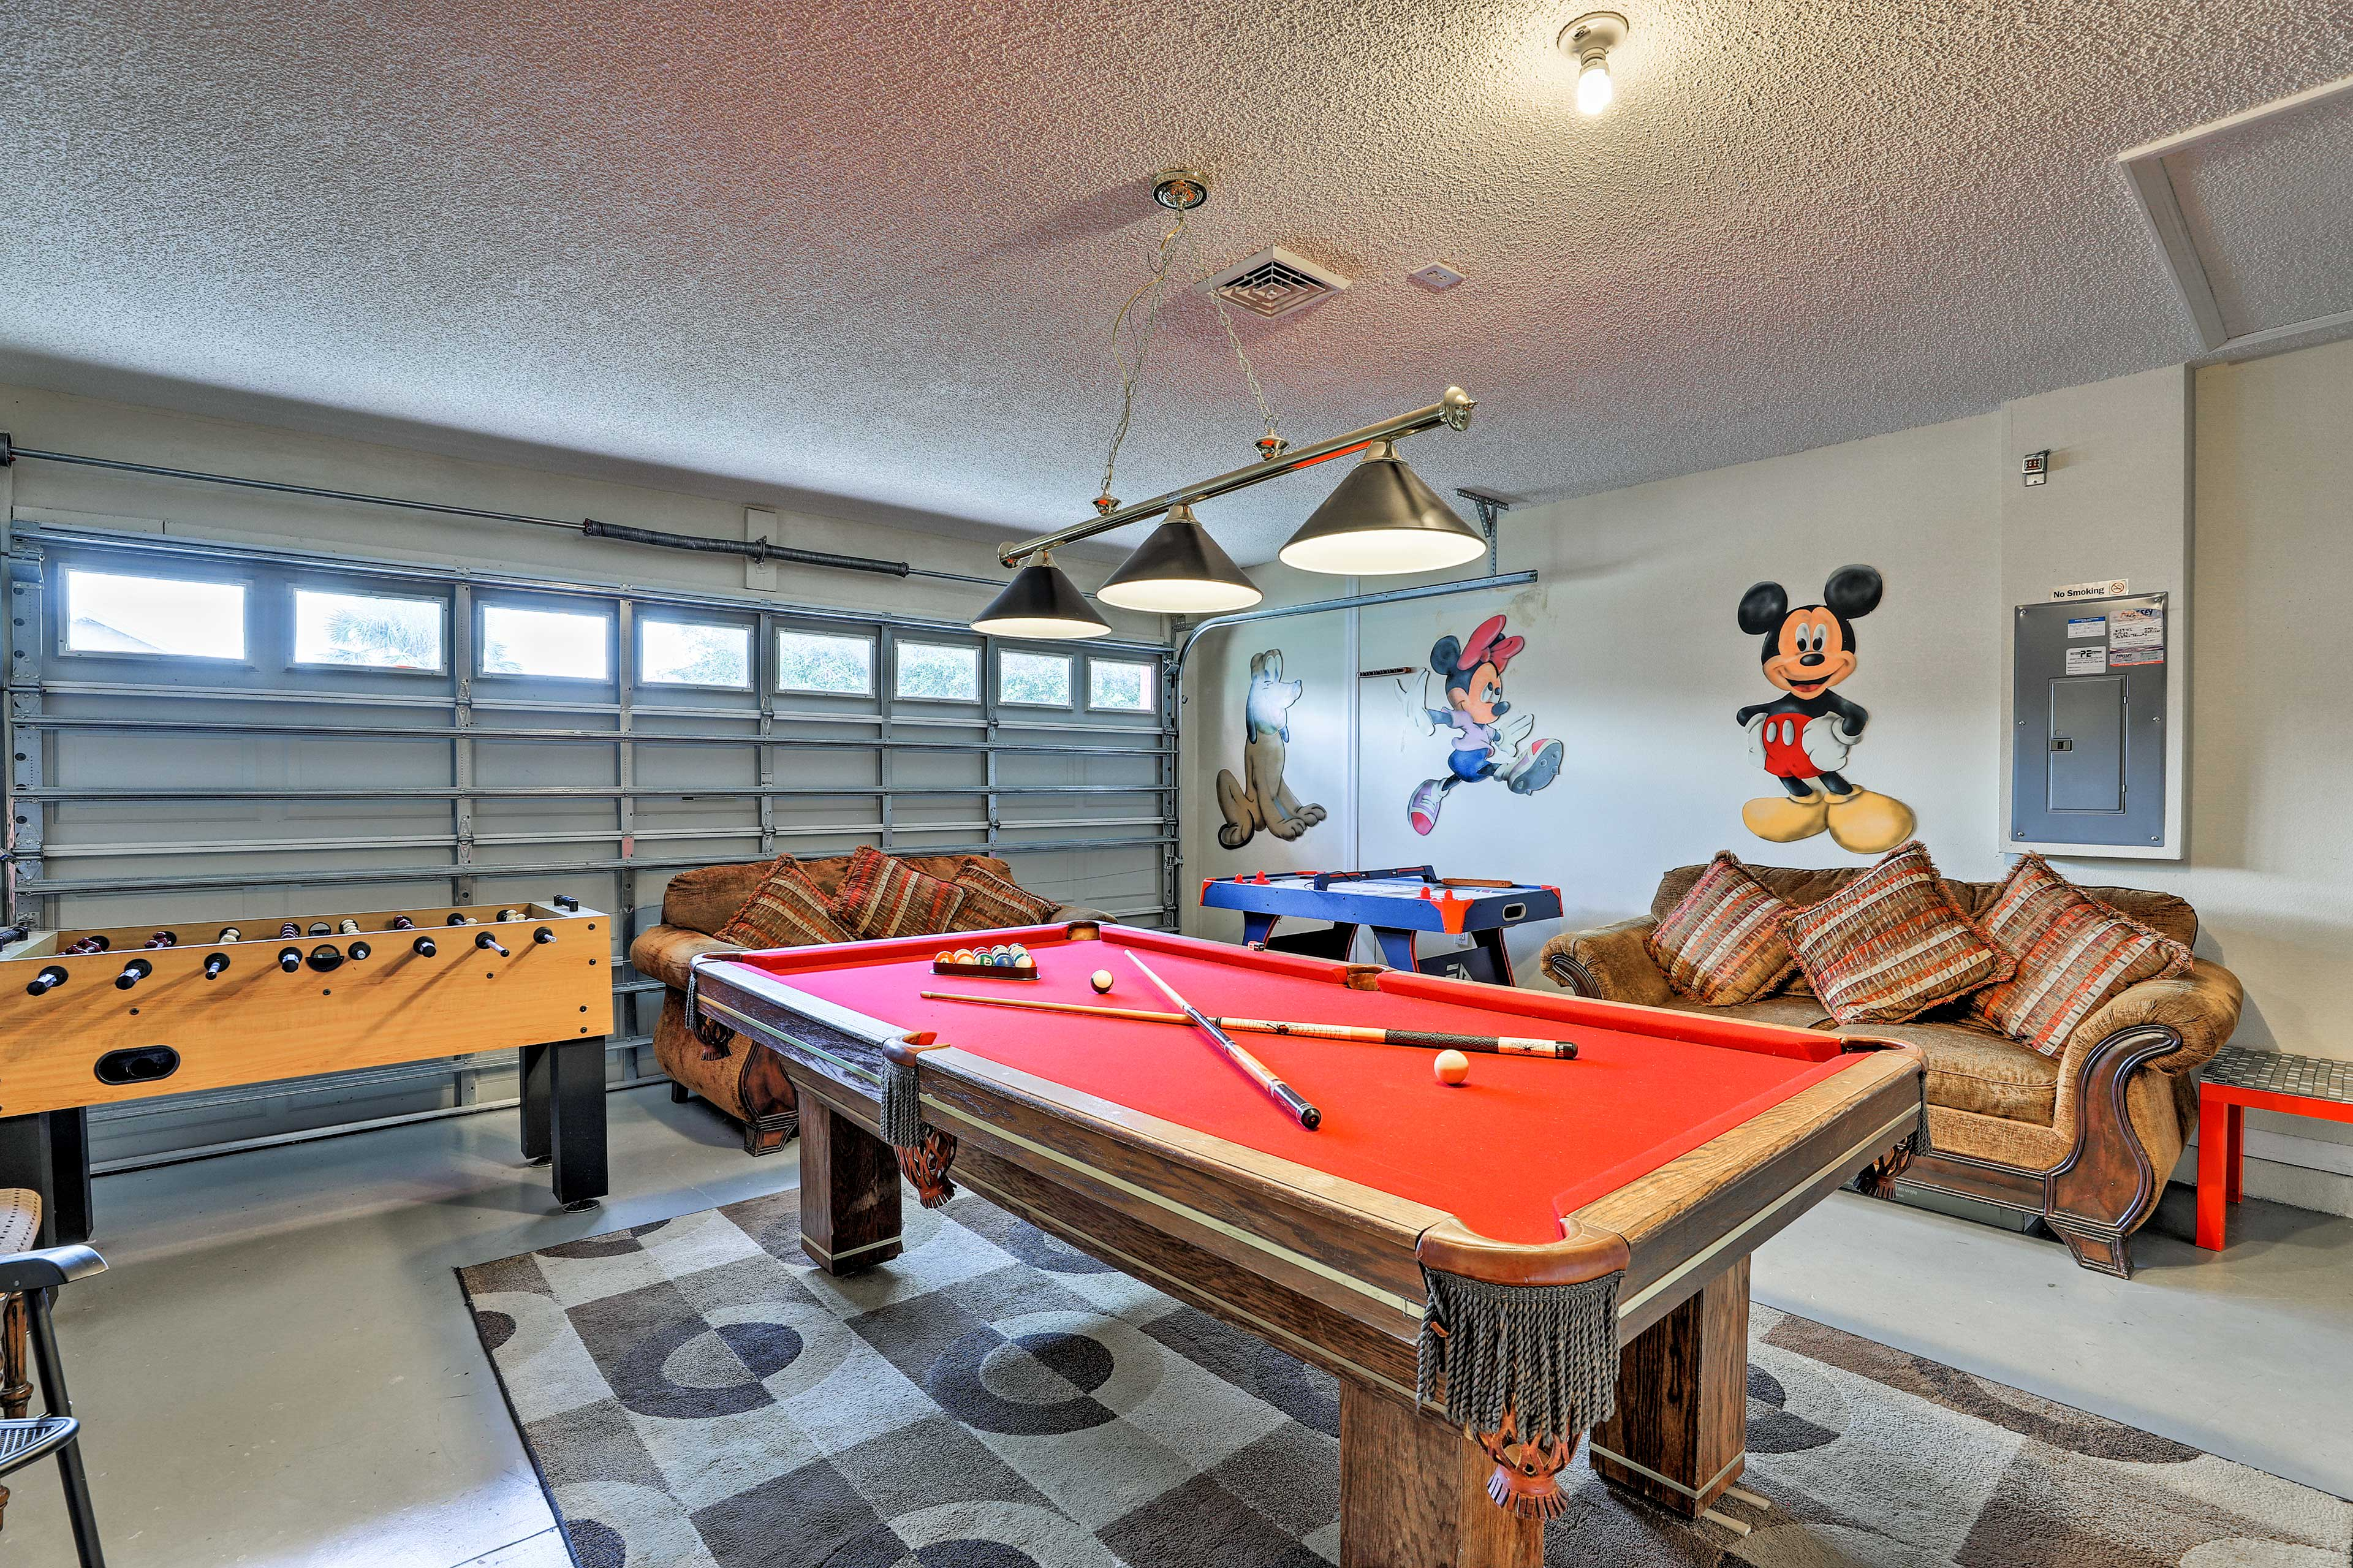 Challenge your cousin to a billiards game.